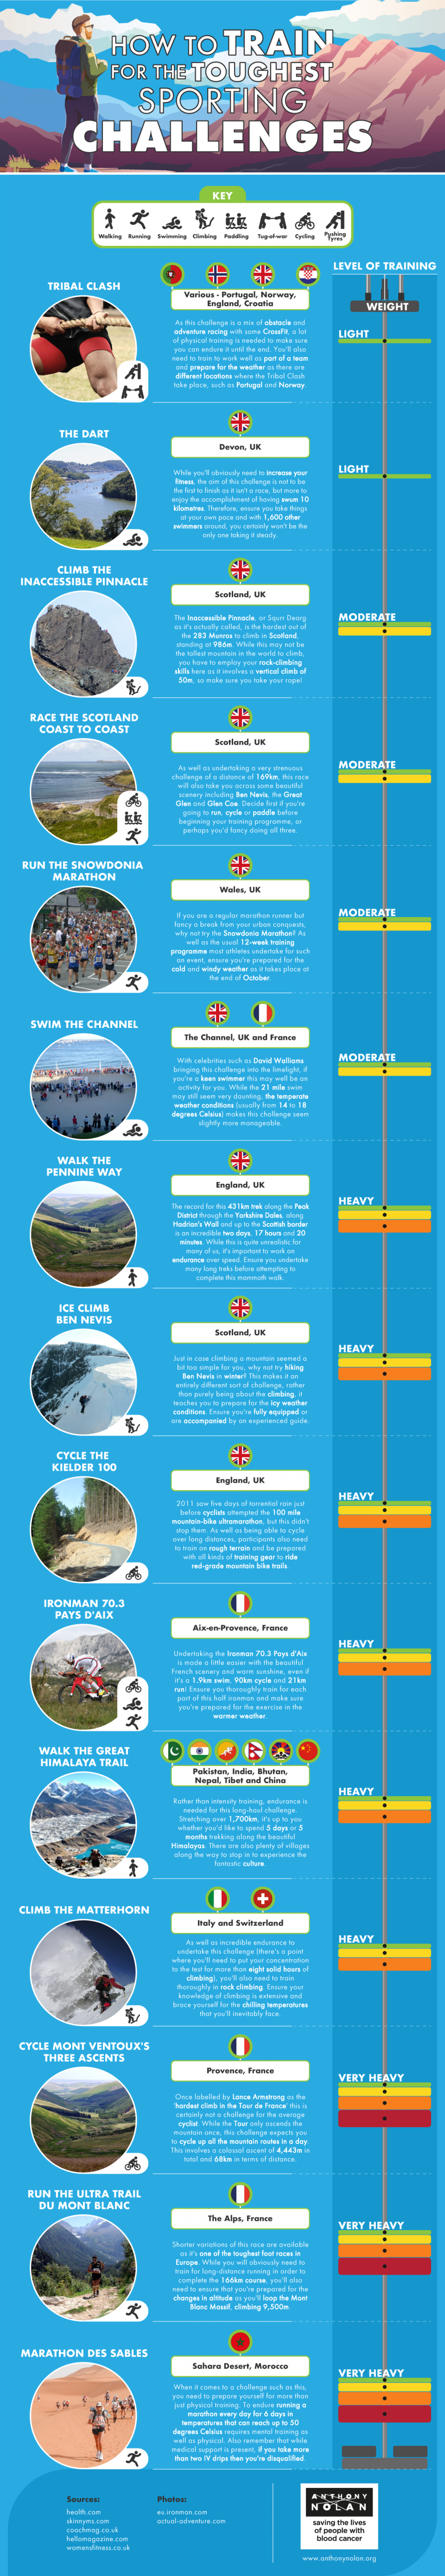 How to Train for the Toughest Sporting Challenges Infographic